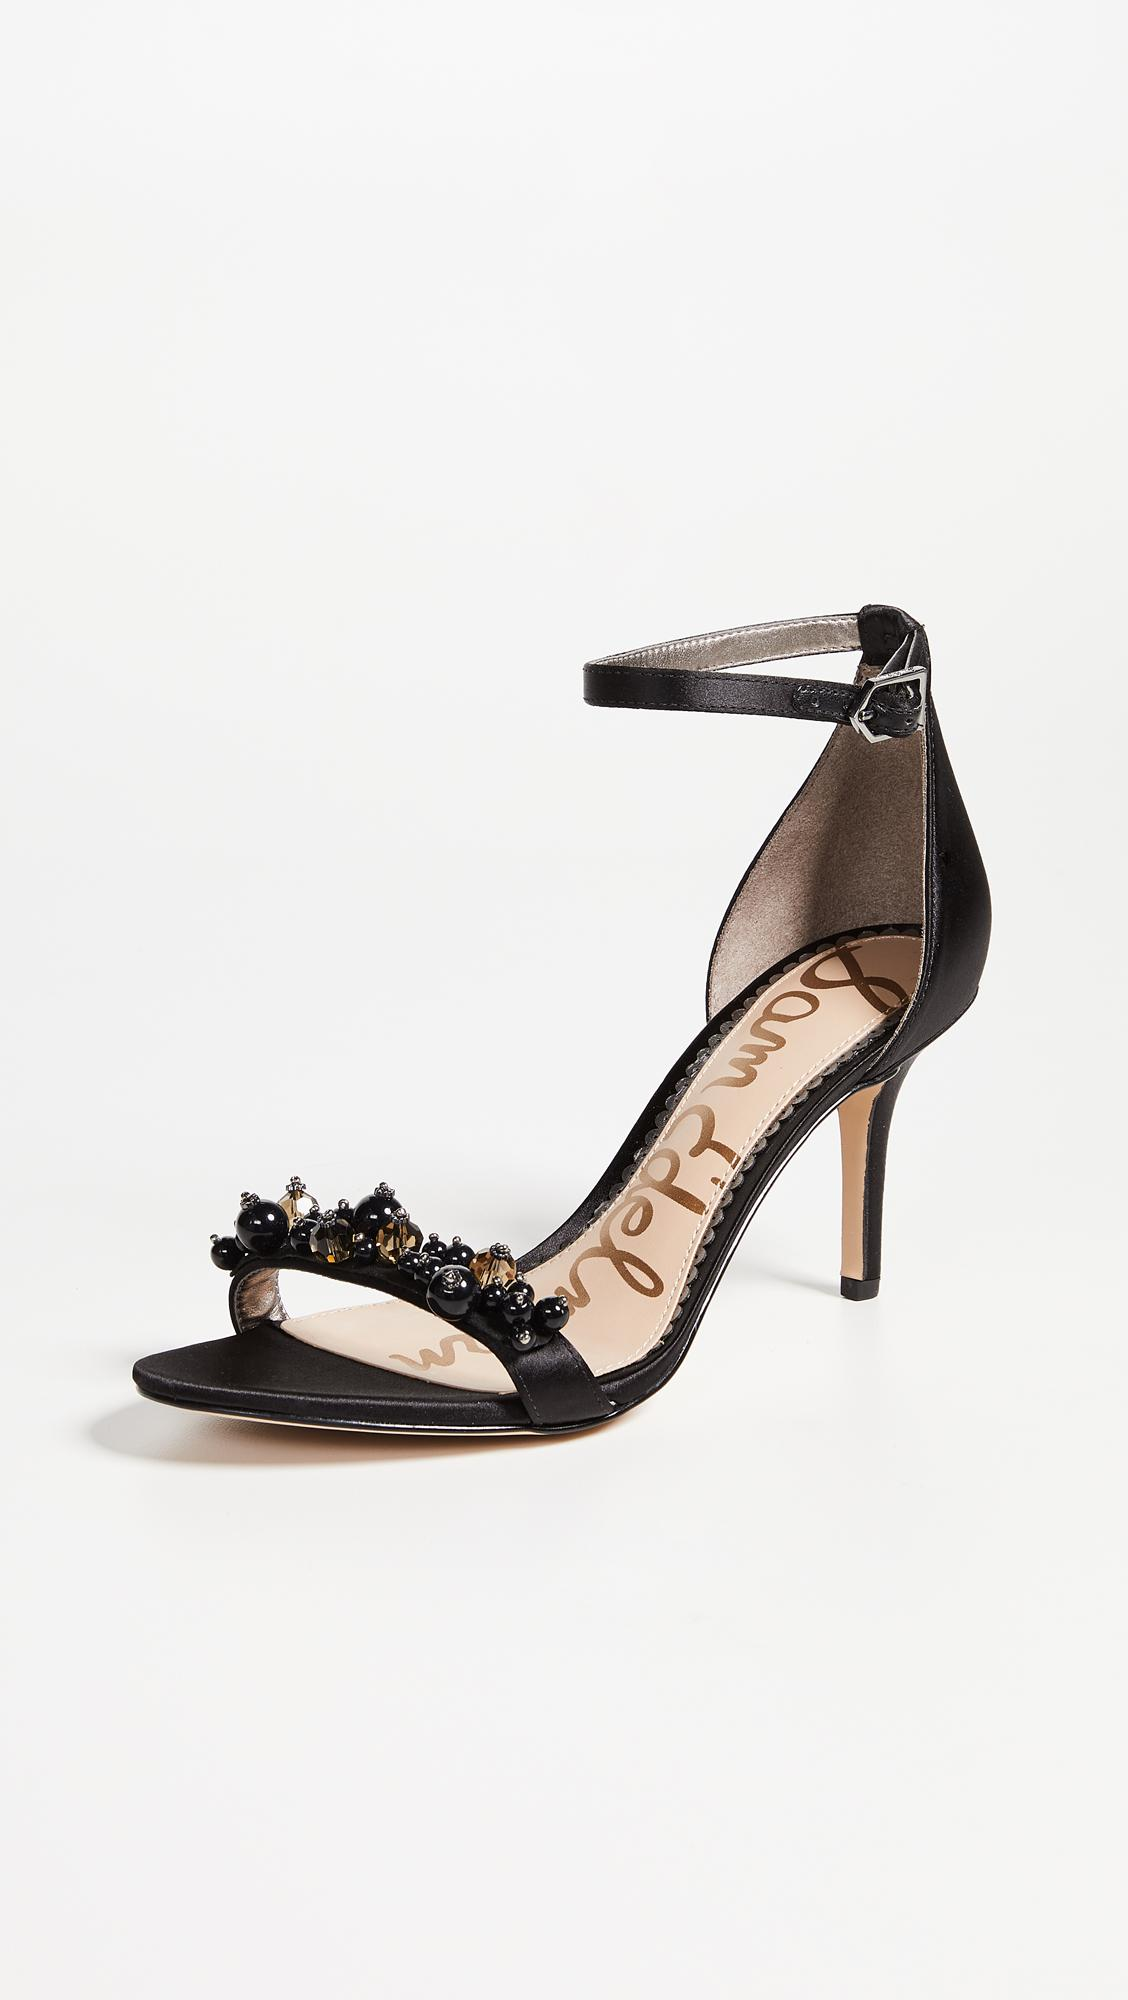 6e116154504025 Lyst - Sam Edelman Platt Sandals in Black